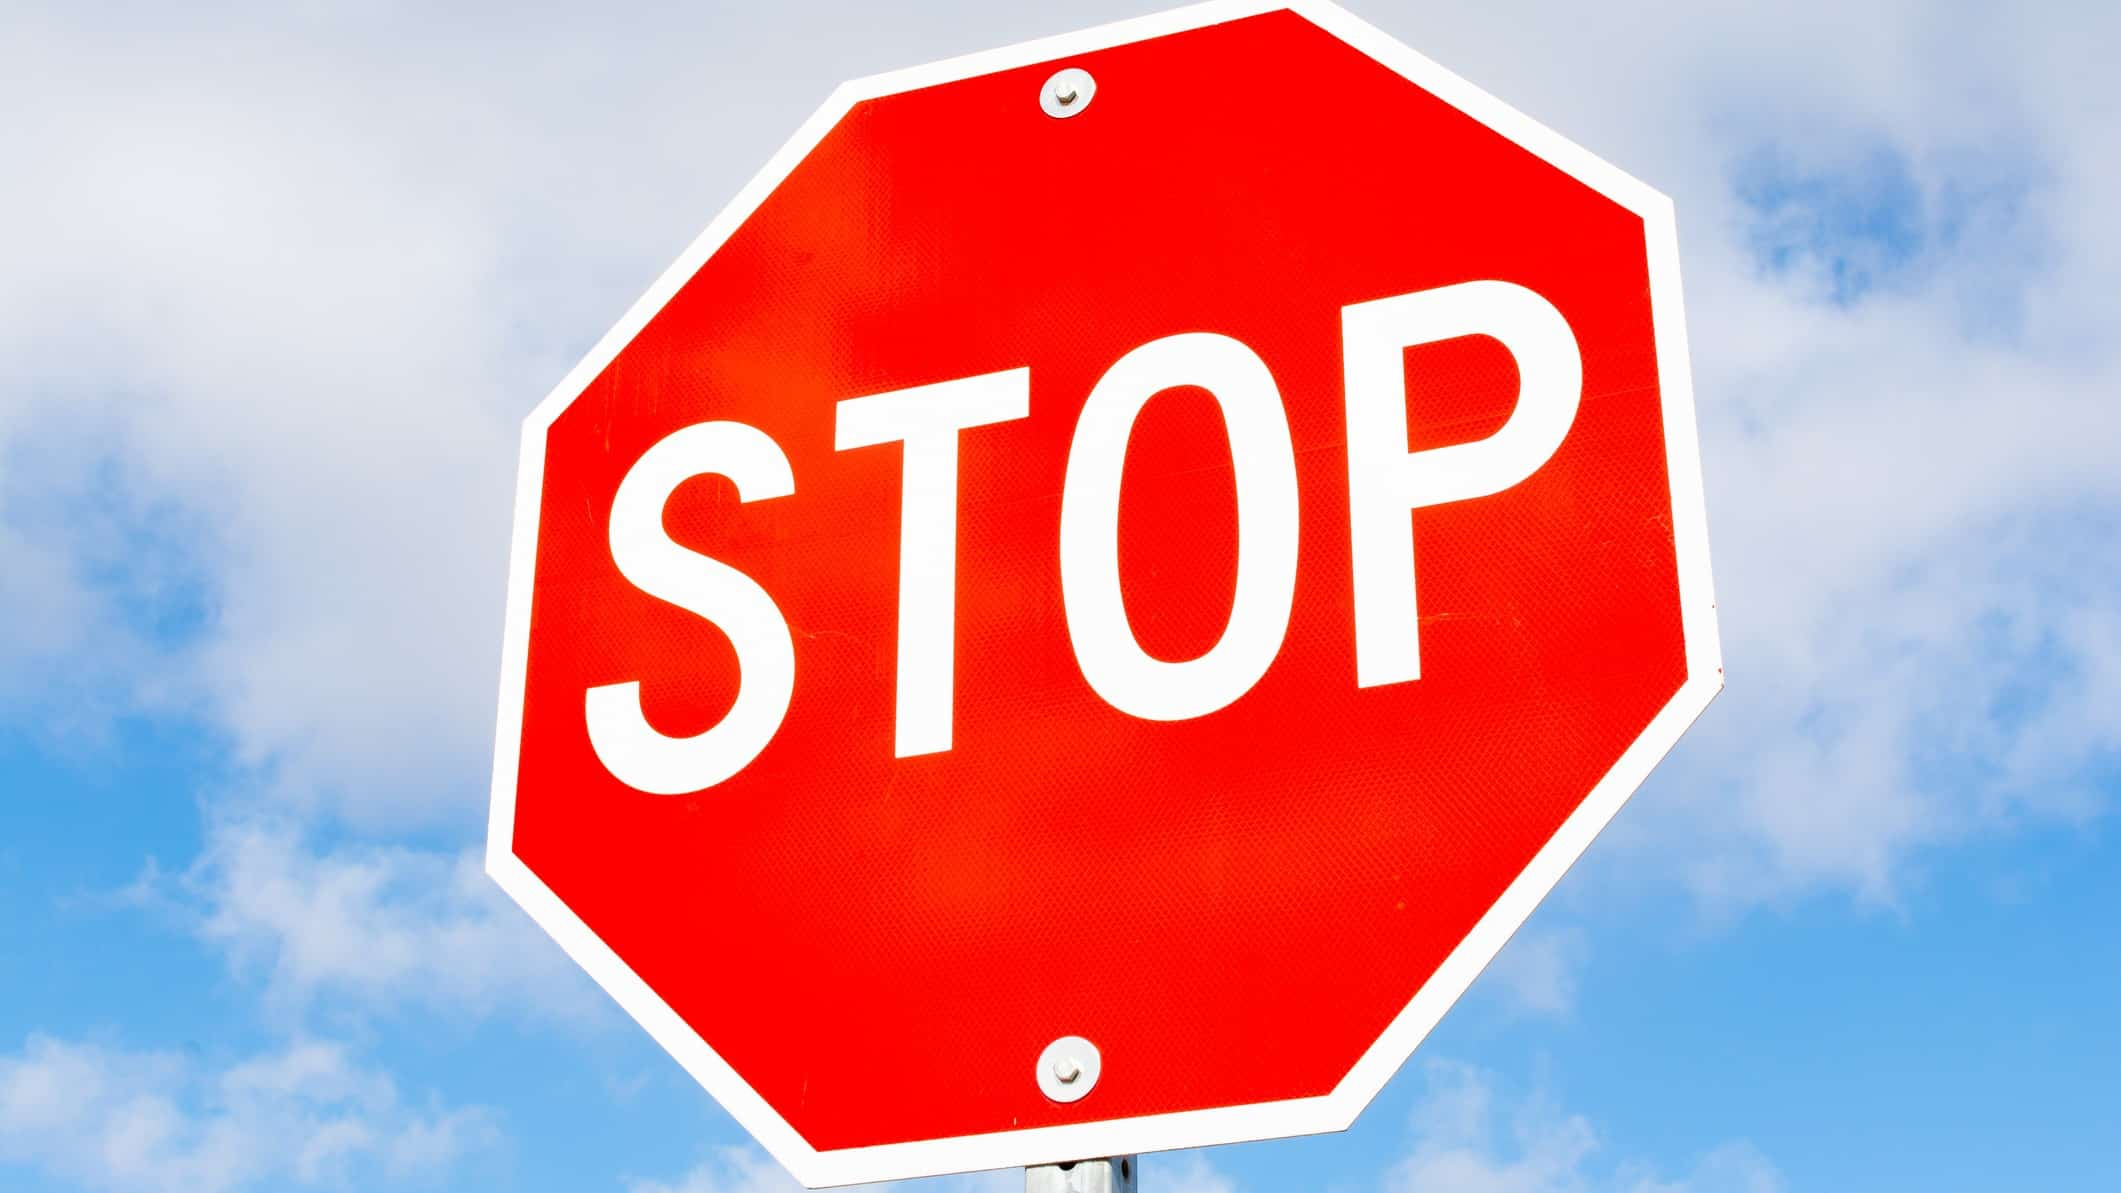 asx share price trading halt represented by stop sign